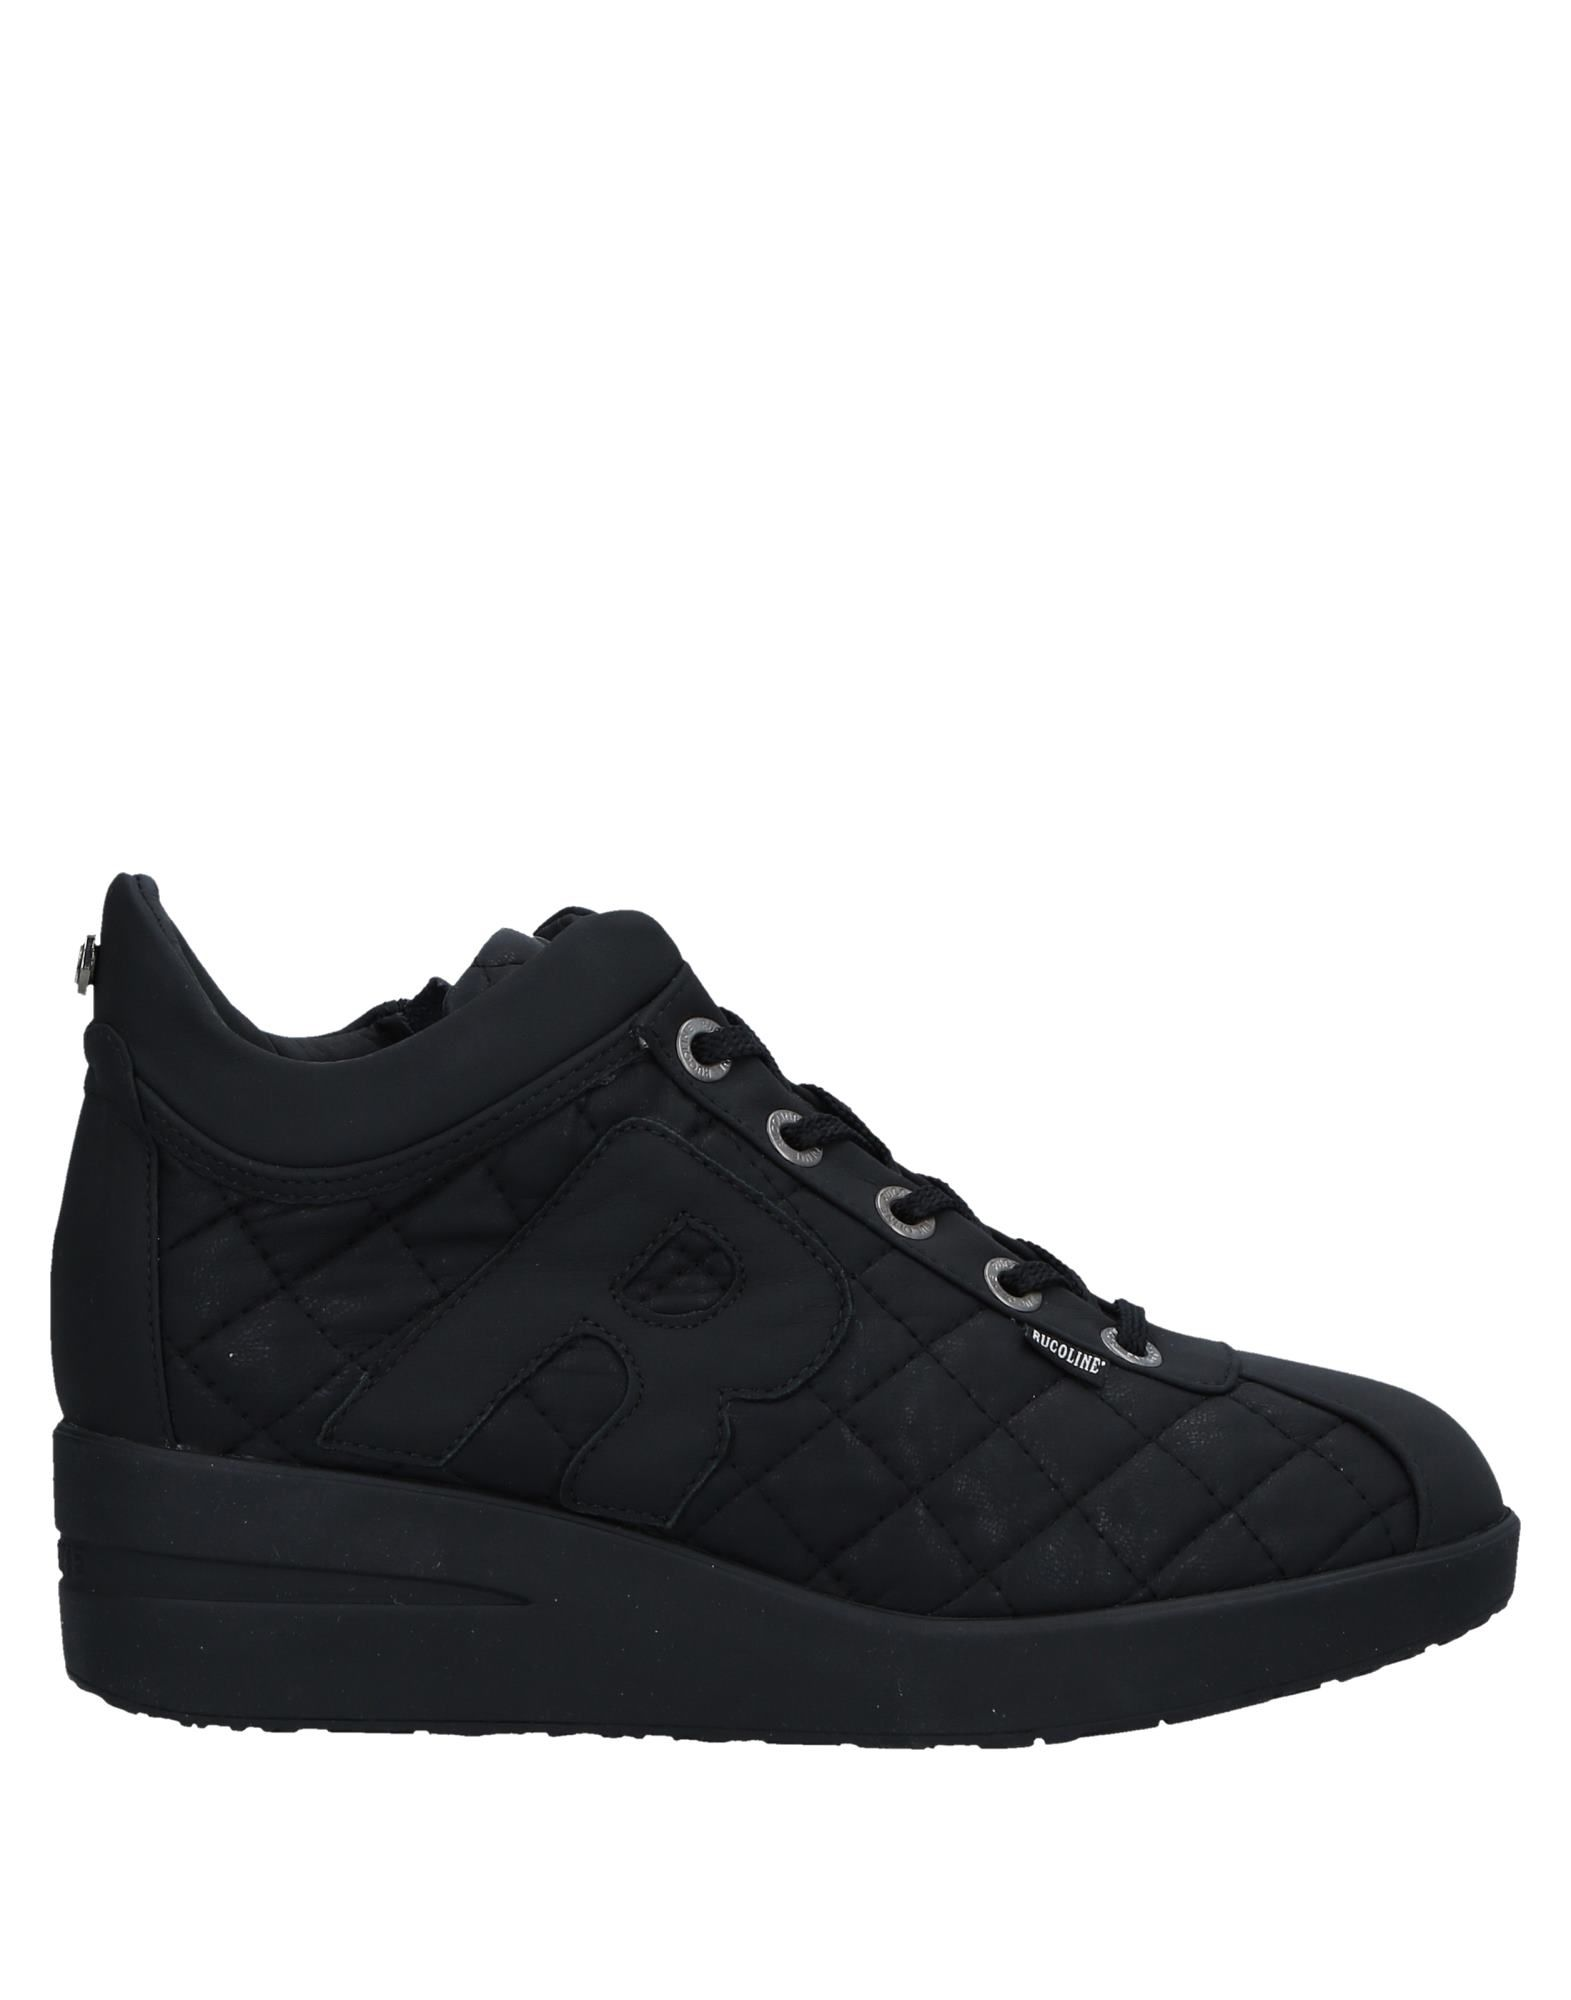 Ruco on Line Sneakers - Women Ruco Line Sneakers online on Ruco  Australia - 11543756QD db0d60